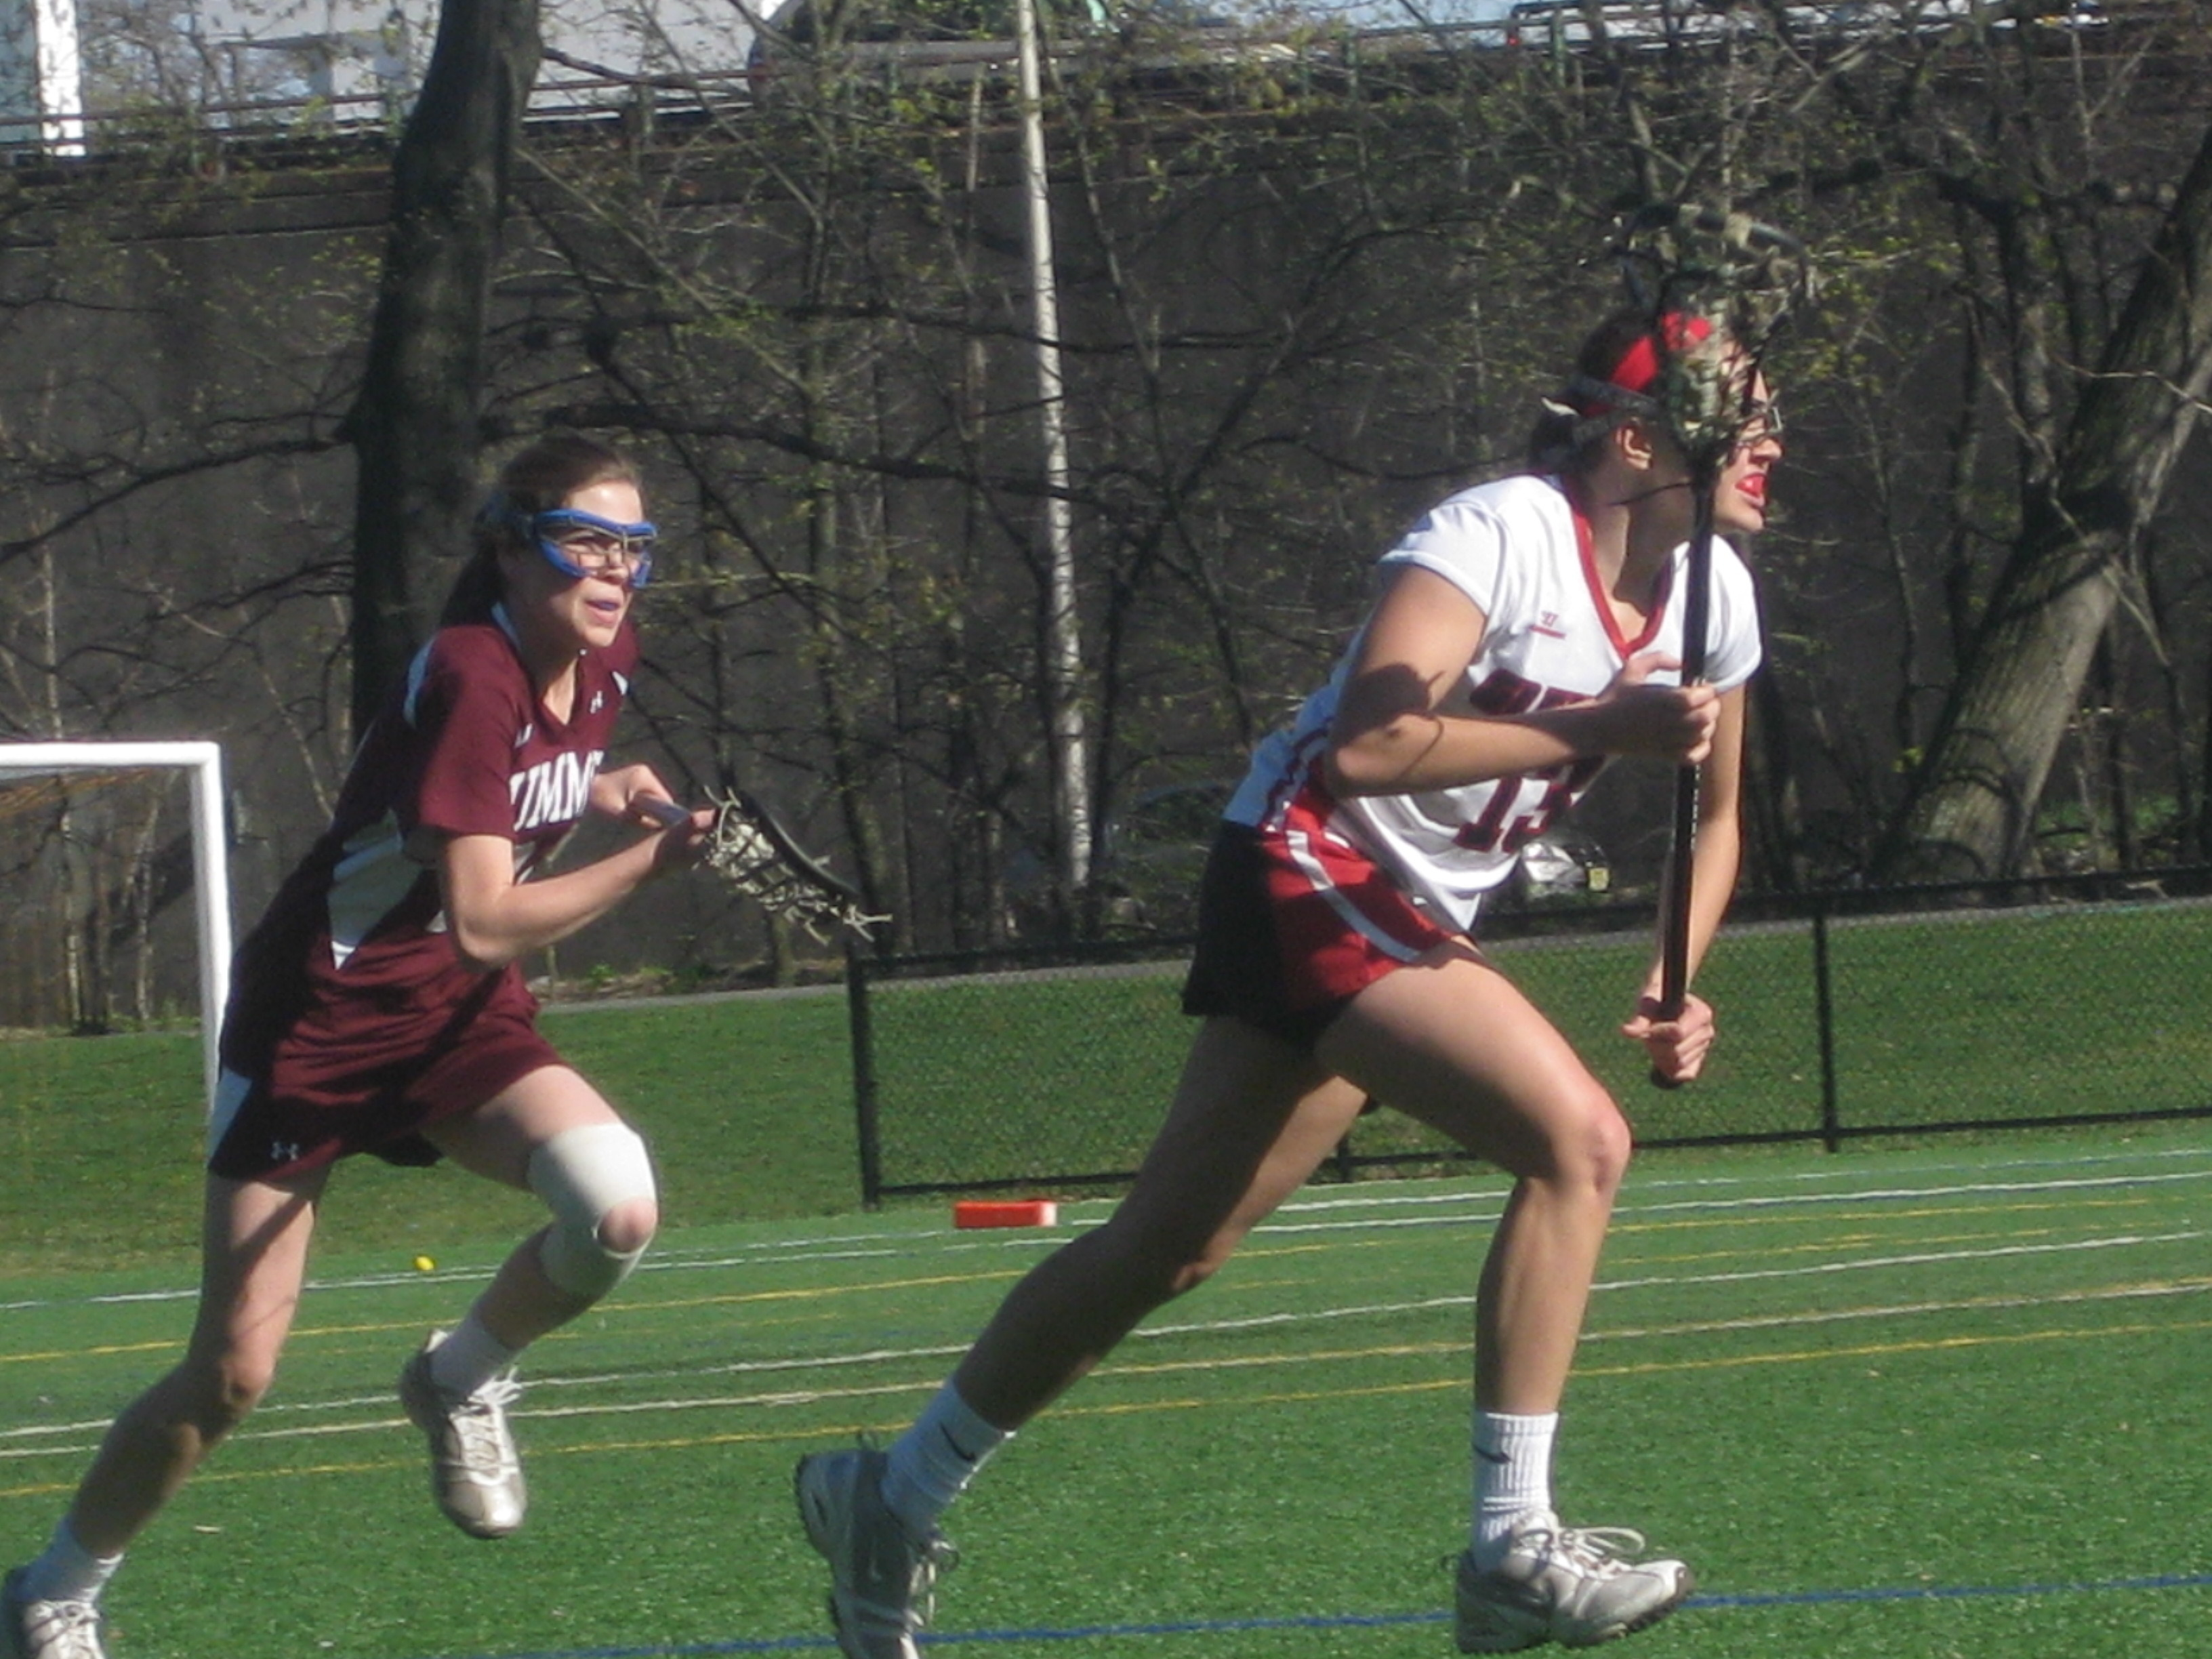 b0c5c9b870f874c7a995_summit_girls_lax_006.jpg